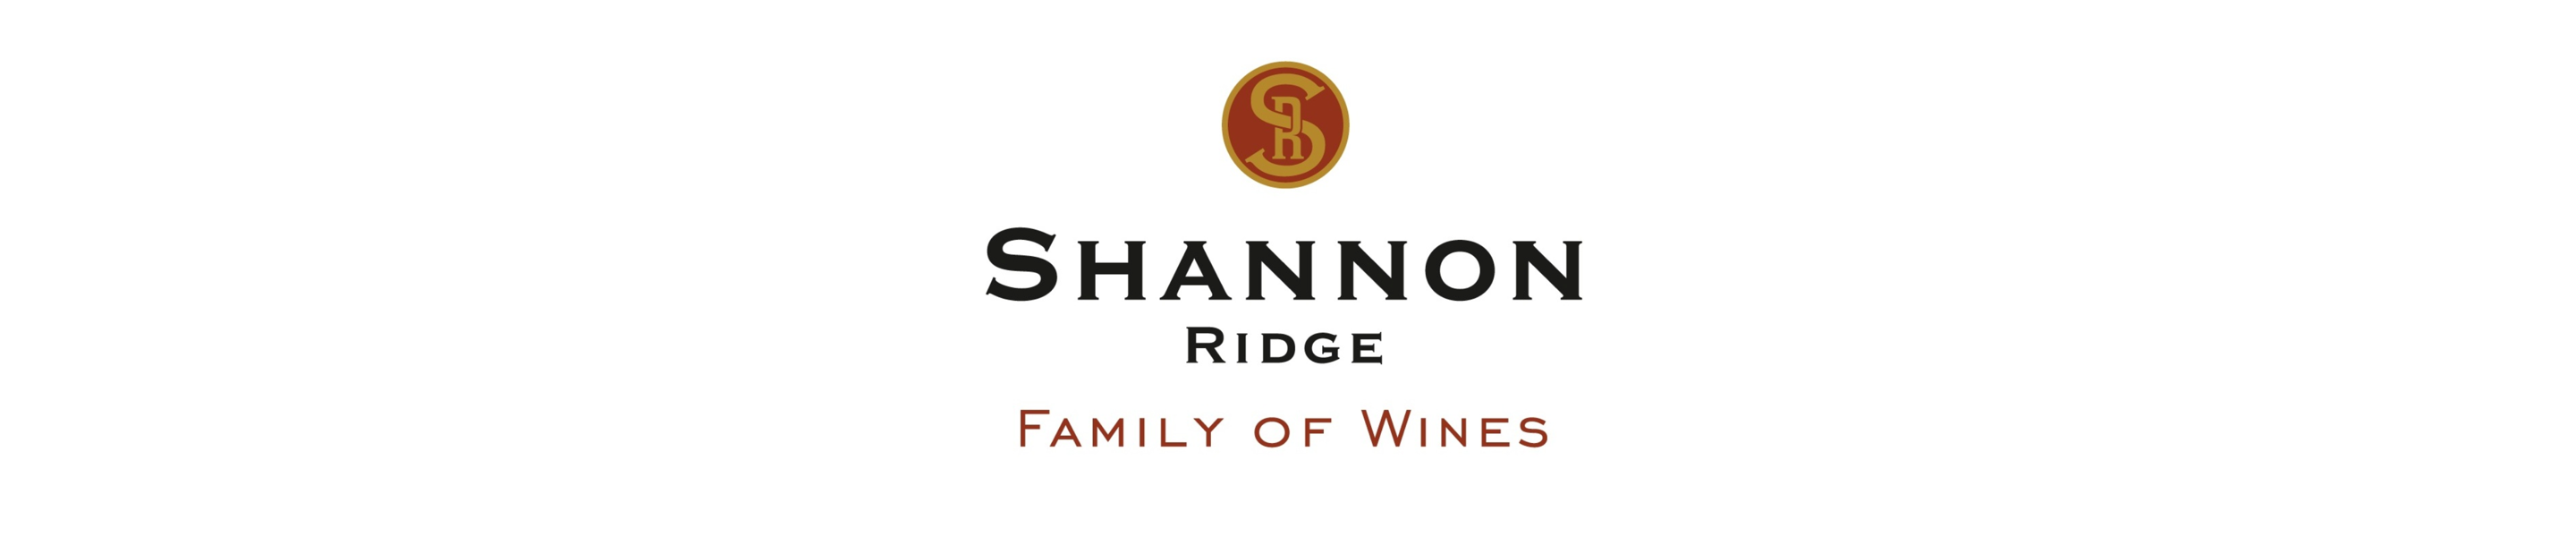 At Shannon Ridge we are dedicated to creating a family of wines that consumers love at top-quality and affordable prices. We are passionate about preserving our land, not only for great vineyard sites, but for the wild creatures which share our property. Our sustainability practices integrate a flock of sheep that clean the vineyards, remove the excess canopy, and reduce the need for chemicals, while providing natural fertilizer.